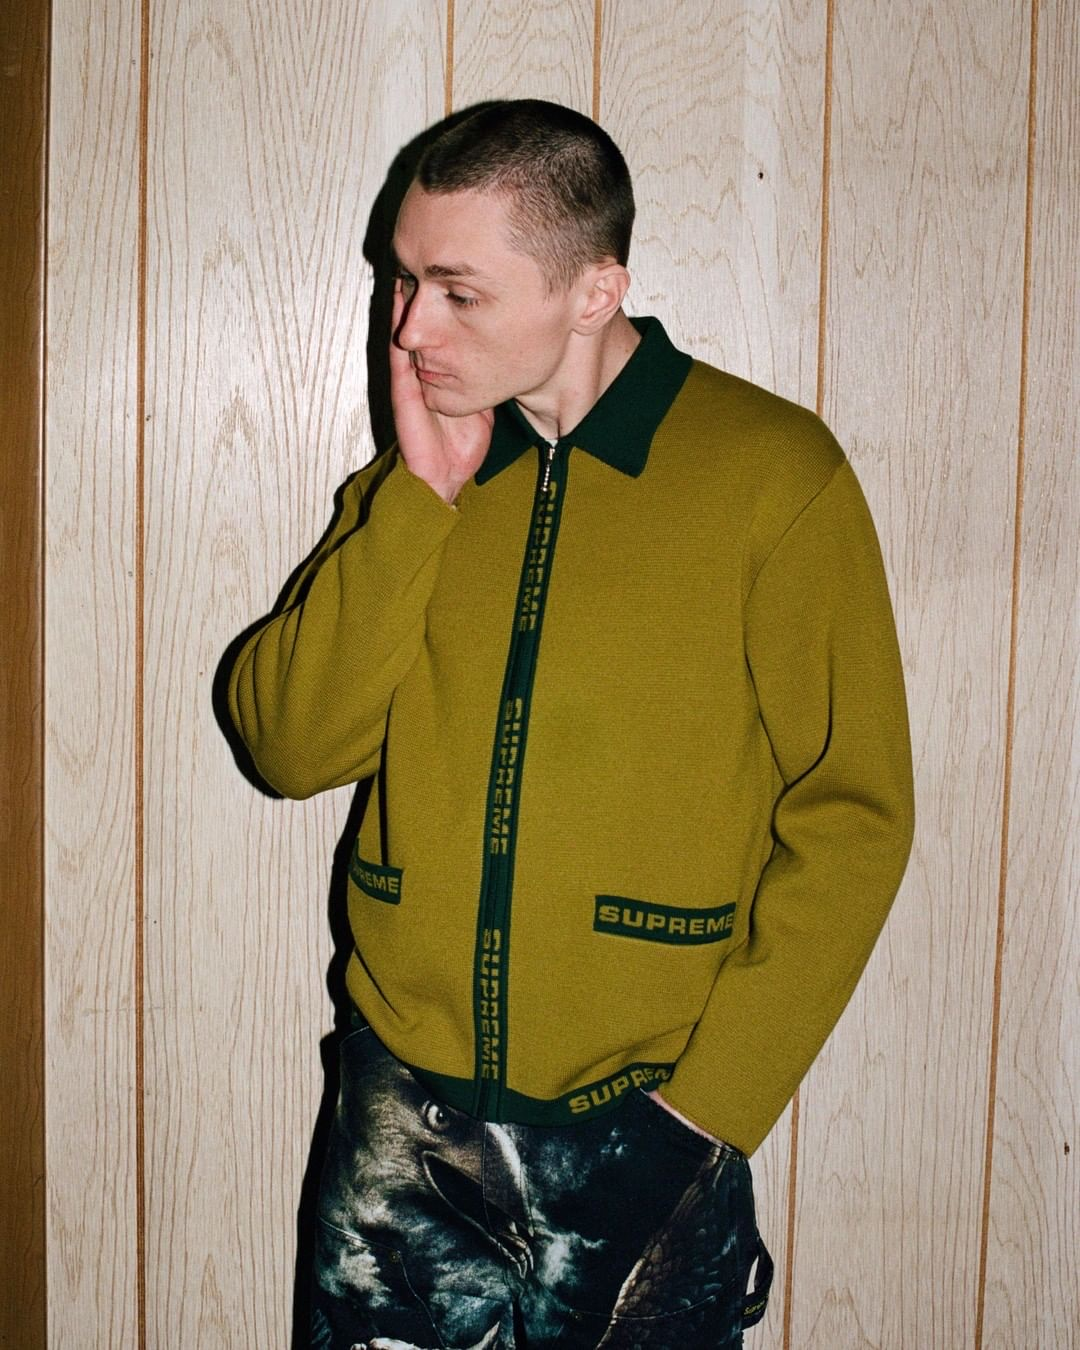 supreme-21ss-editorial-official-instagram